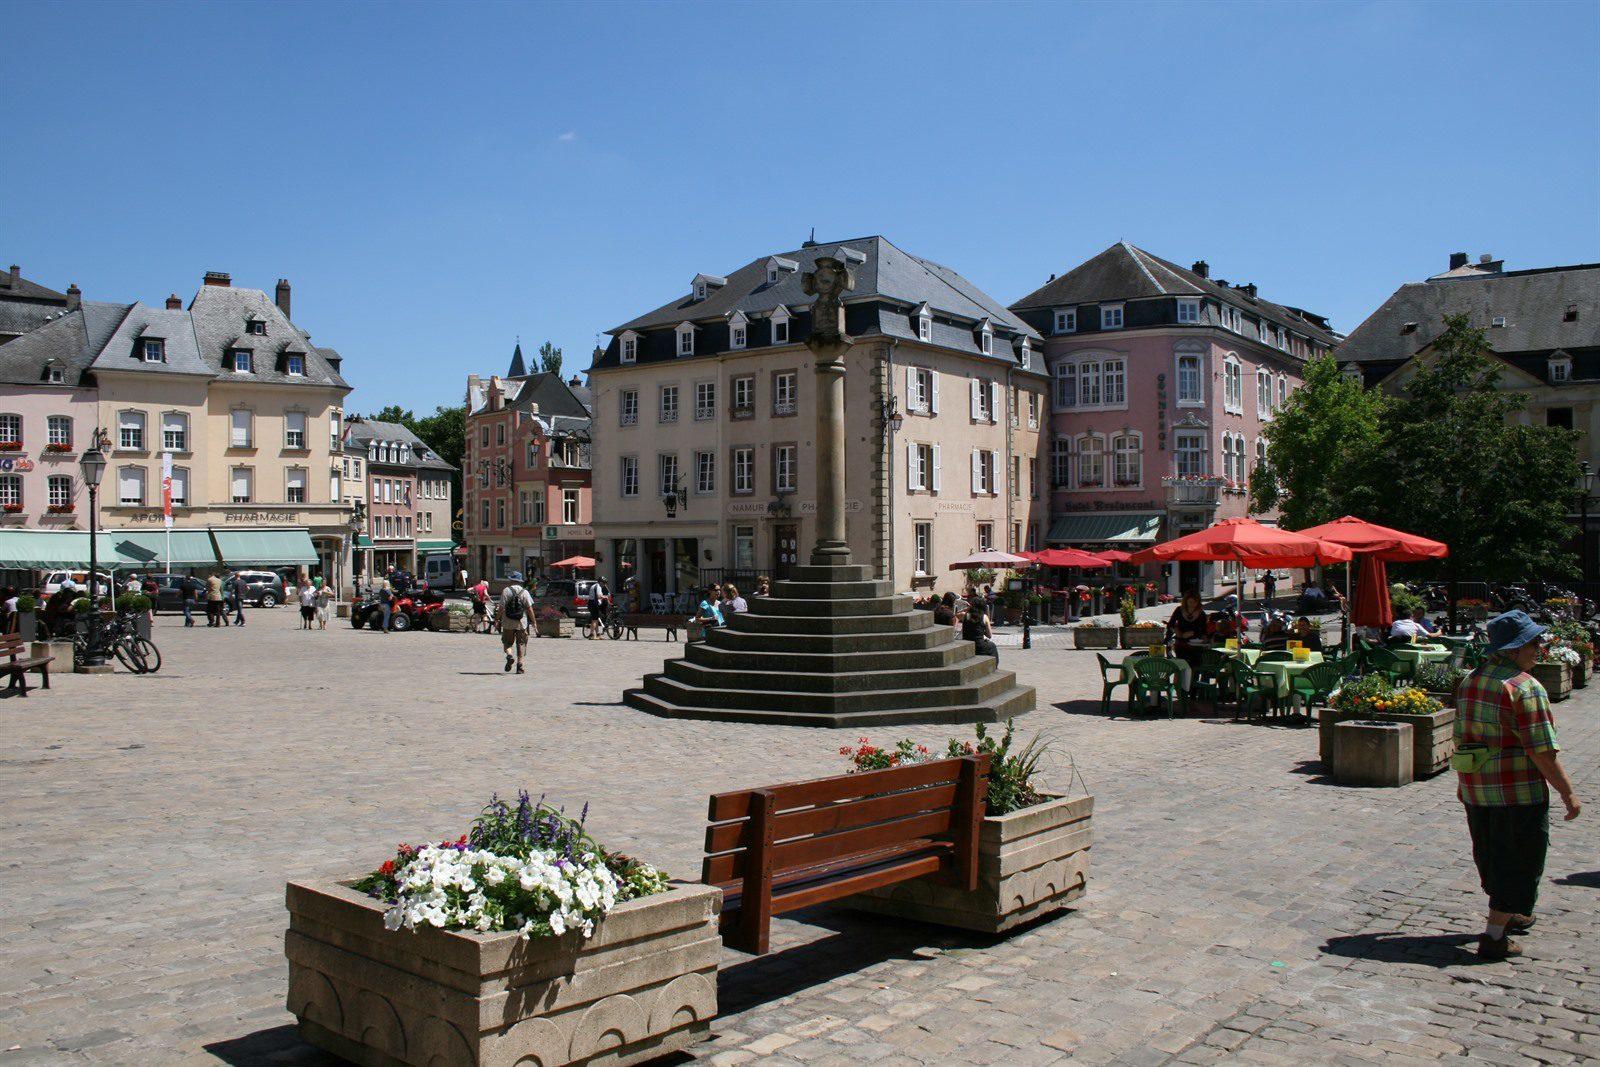 Old city center of Luxembourg, Beter Uit Walsdorf